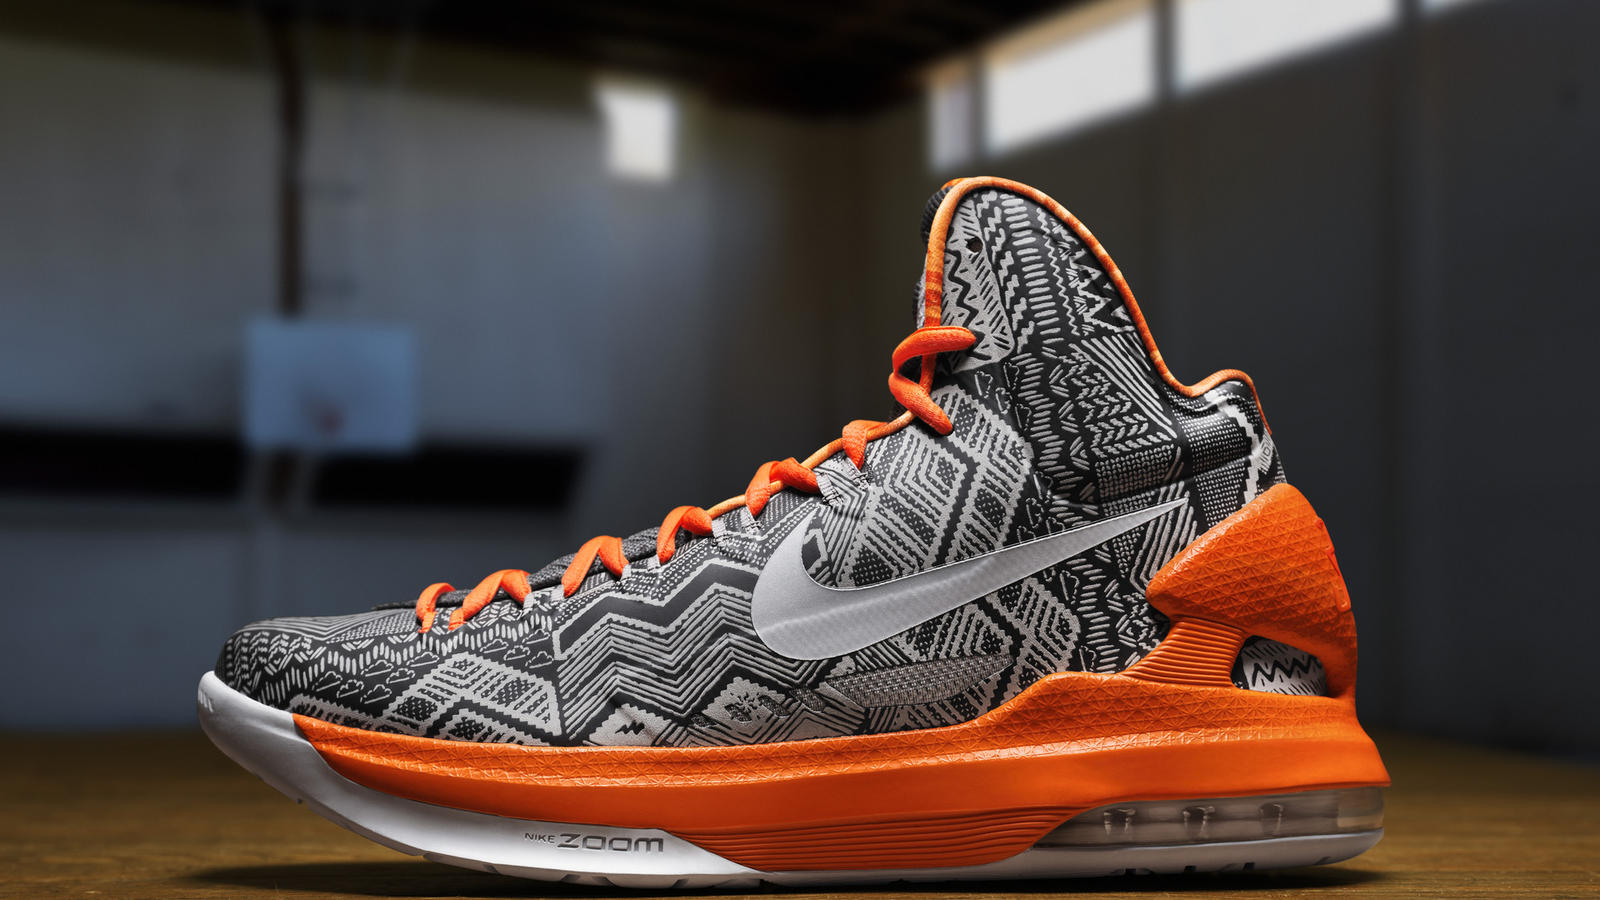 bhm nike shoes 2018 basketball schedule 873143